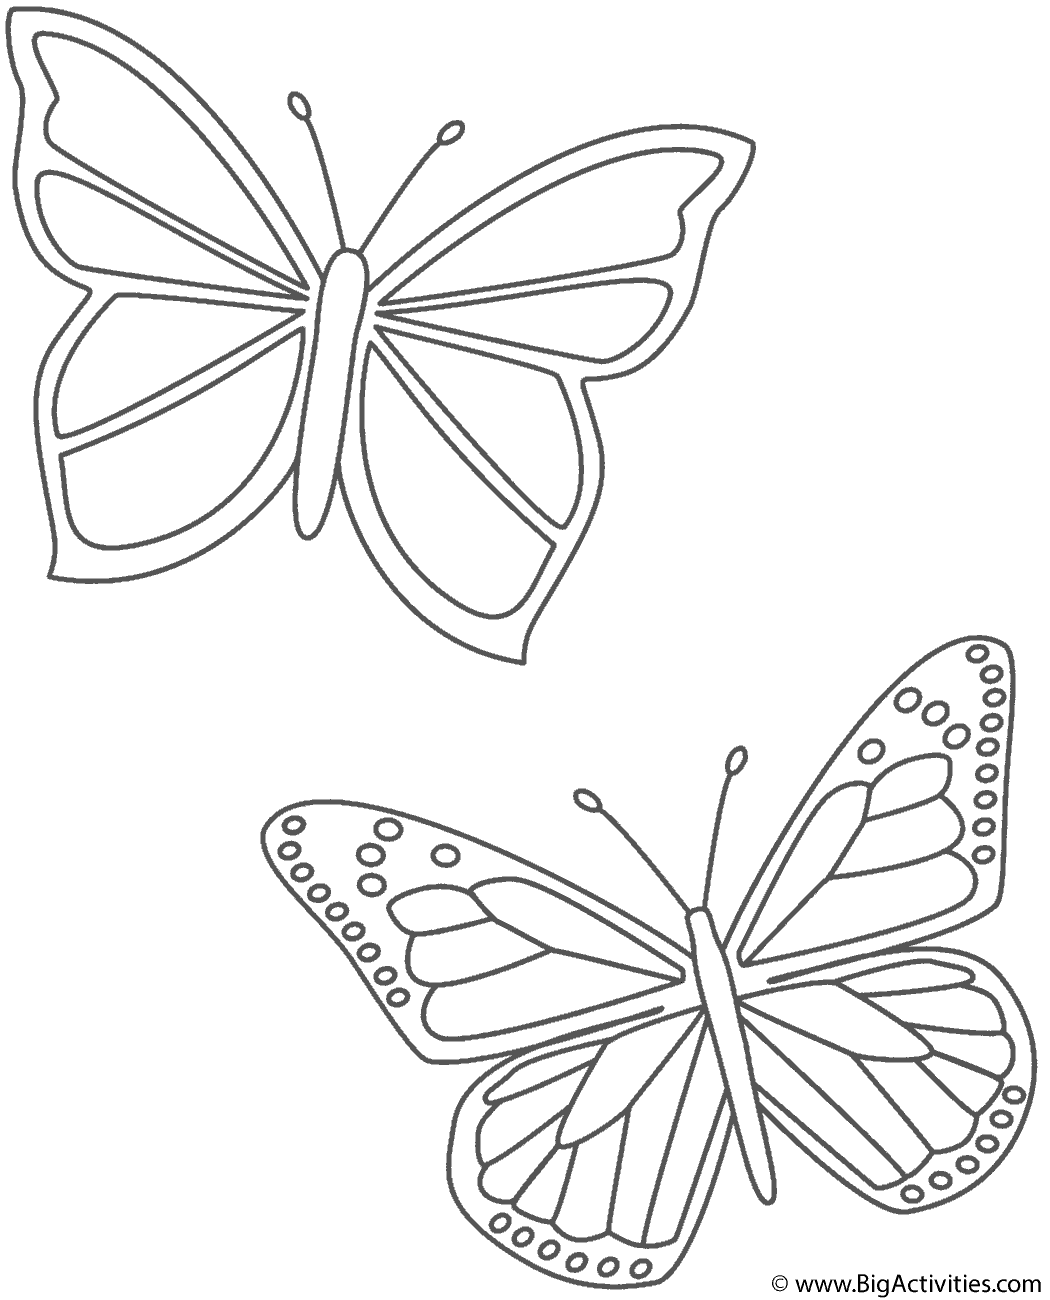 Coloring Page Butterfly Coloring Page Butterfly Drawing Coloring Pages [ 1300 x 1050 Pixel ]